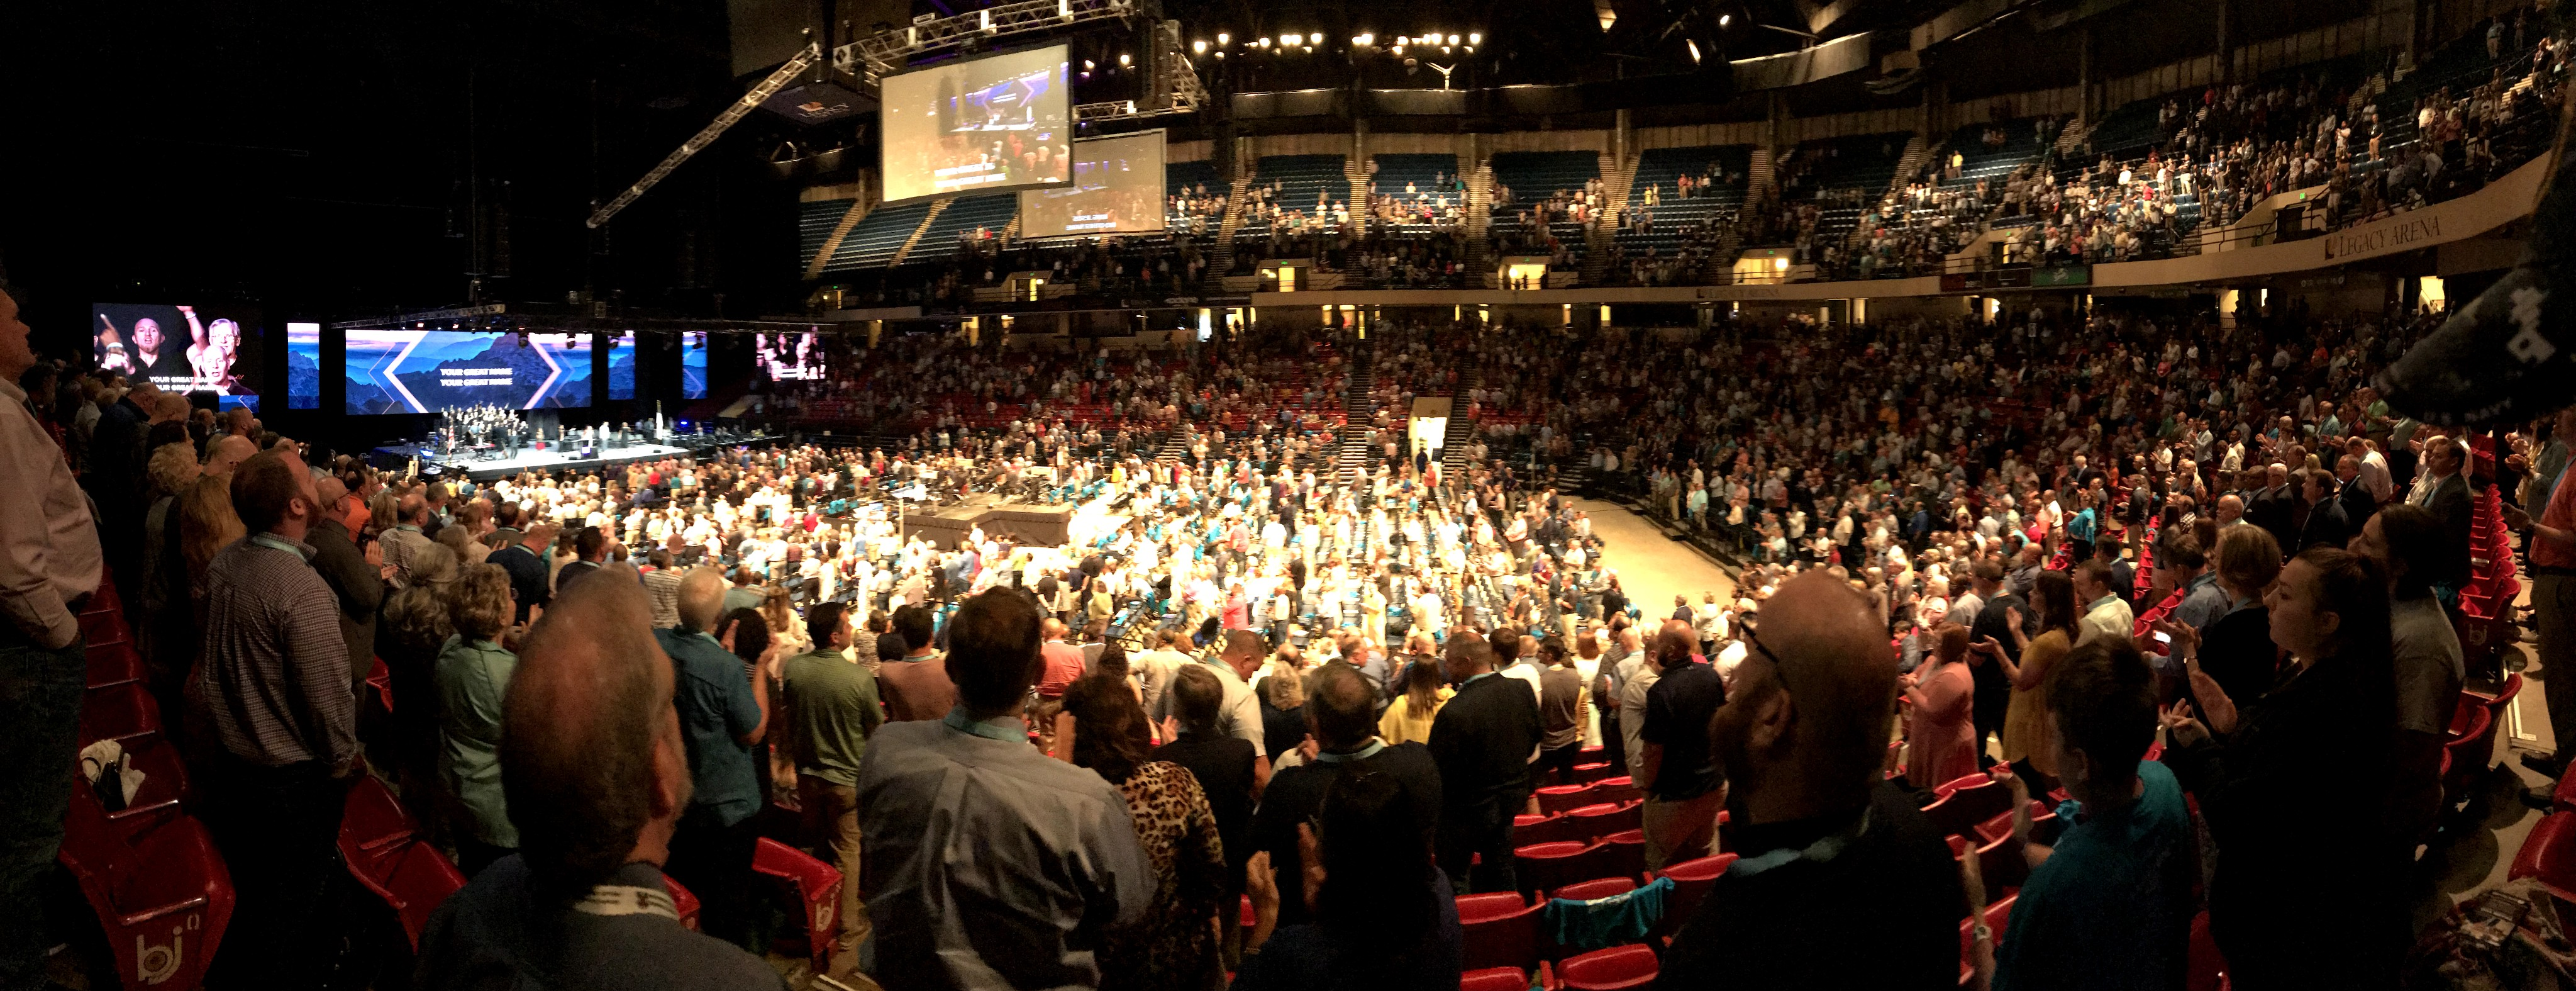 Reflections on the 2019 Annual Meeting of the Southern Baptist